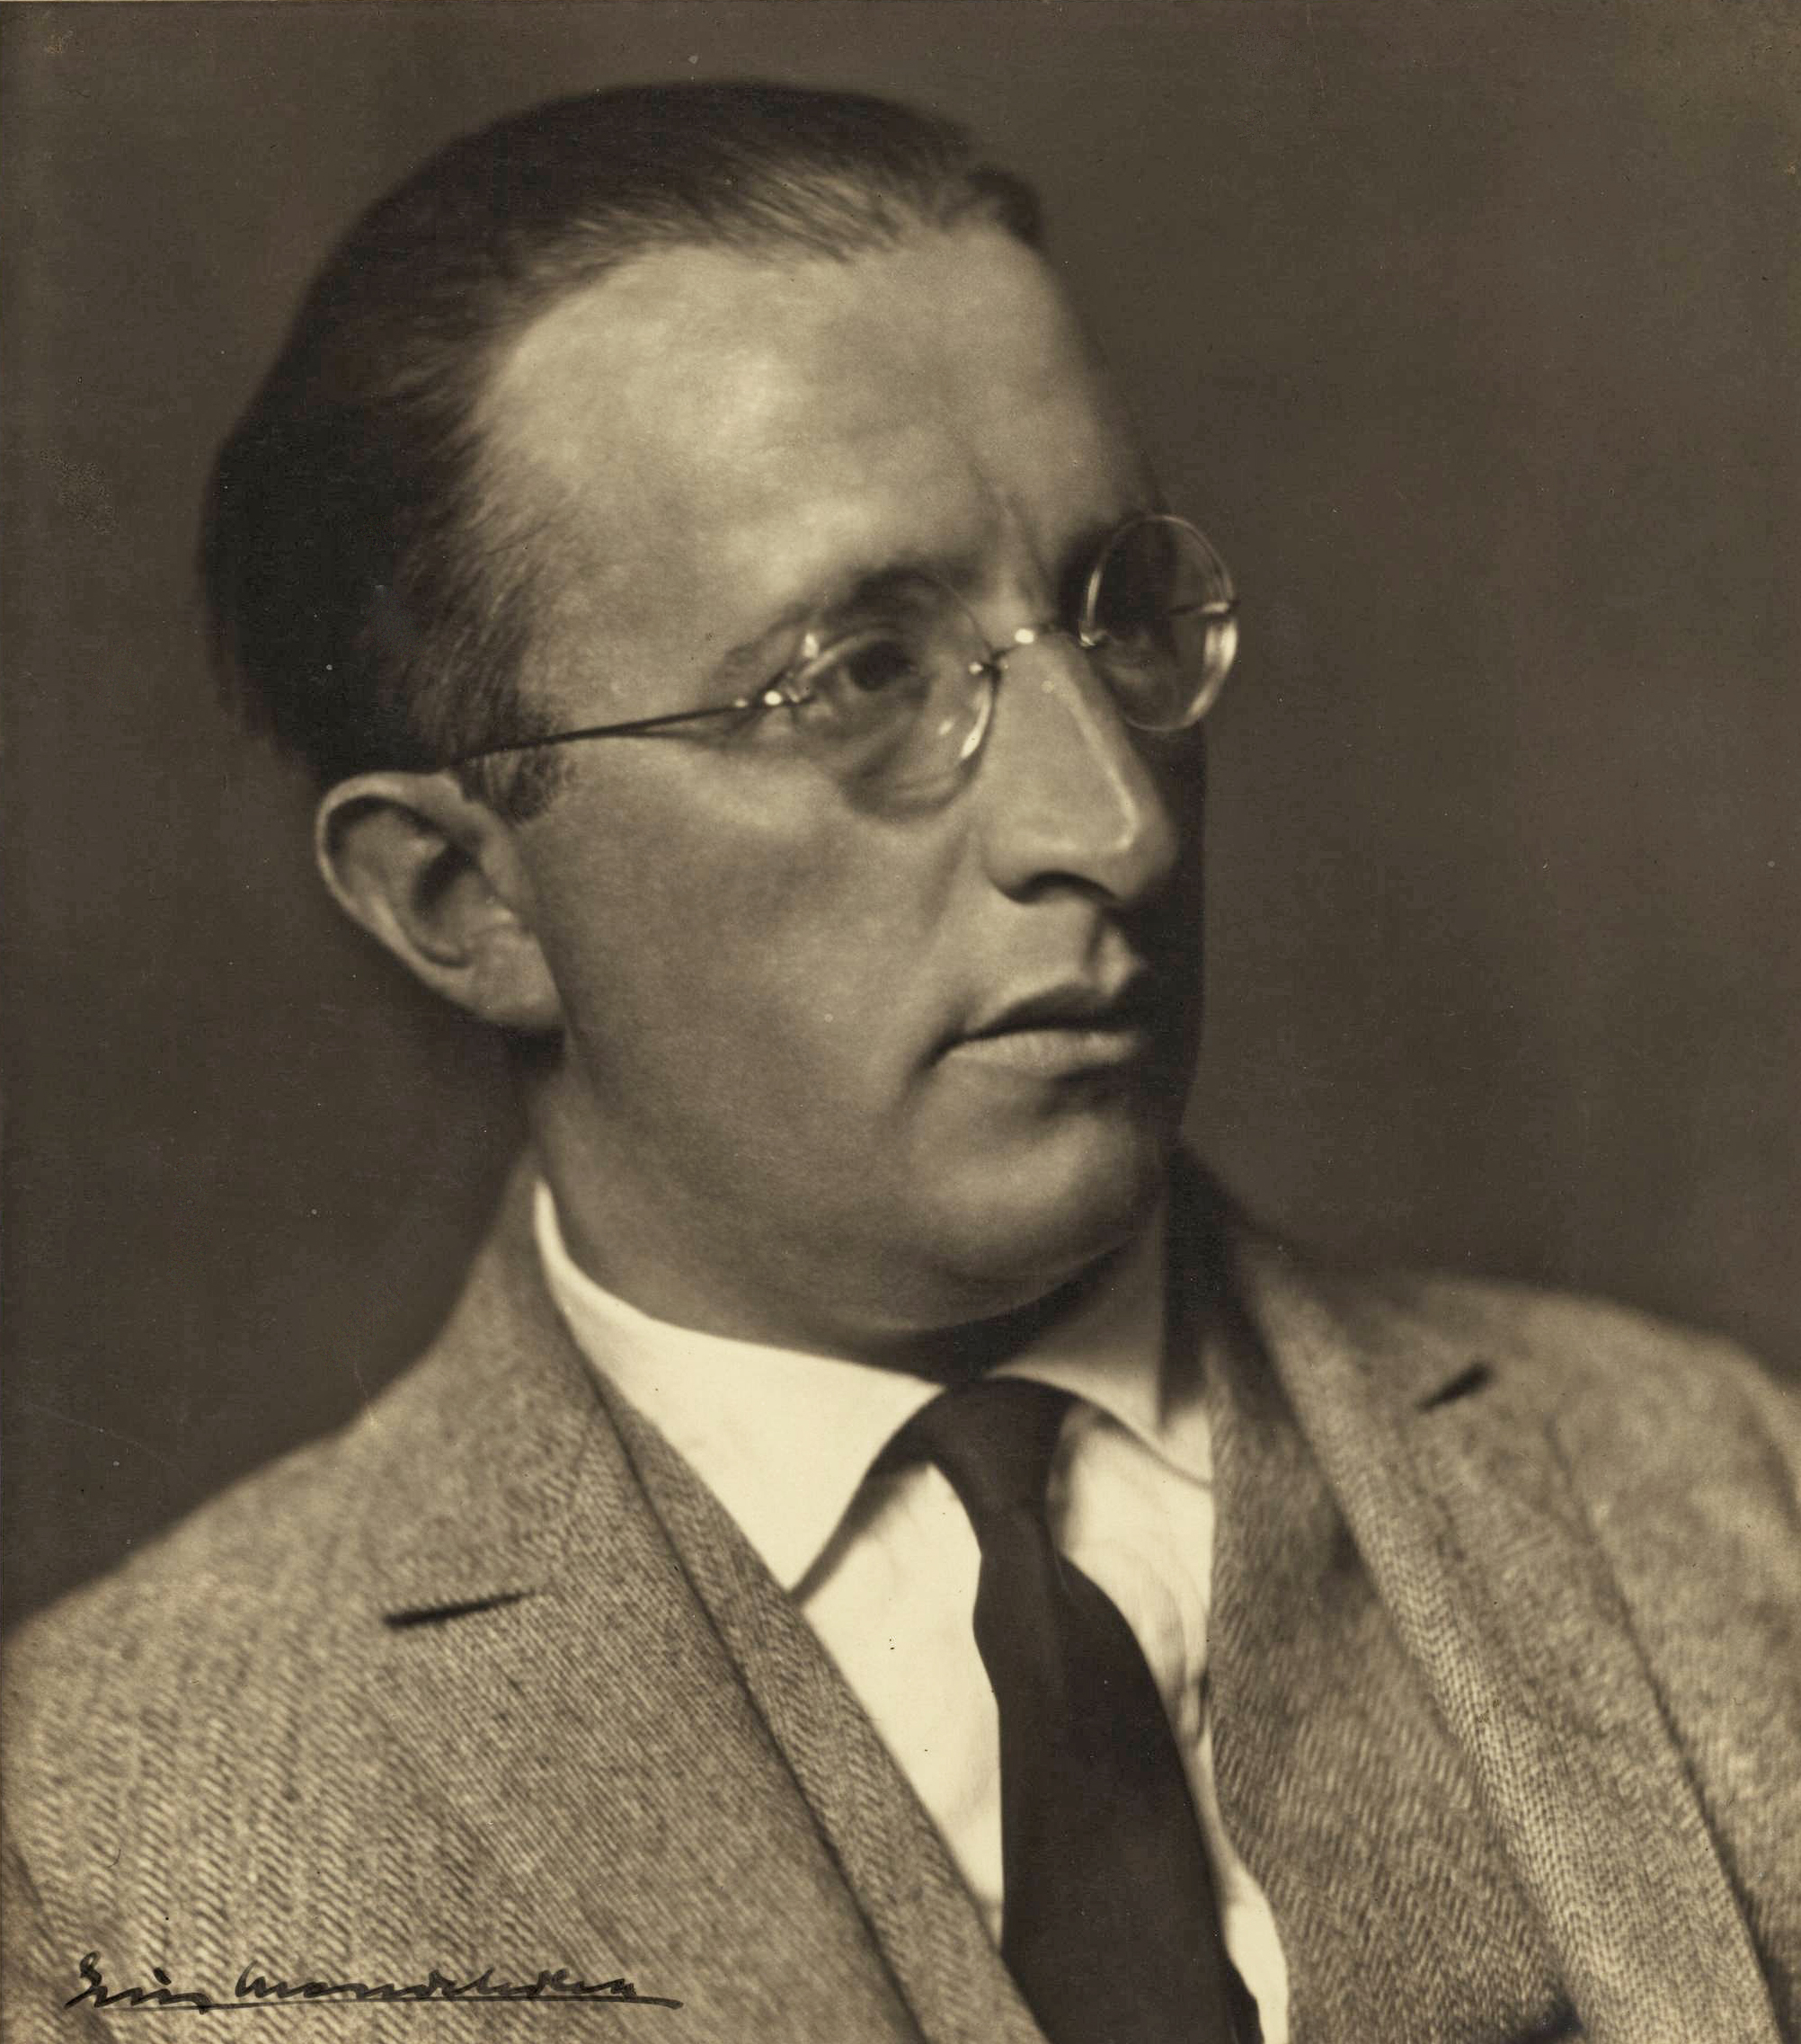 Image of Erich Mendelsohn from Wikidata